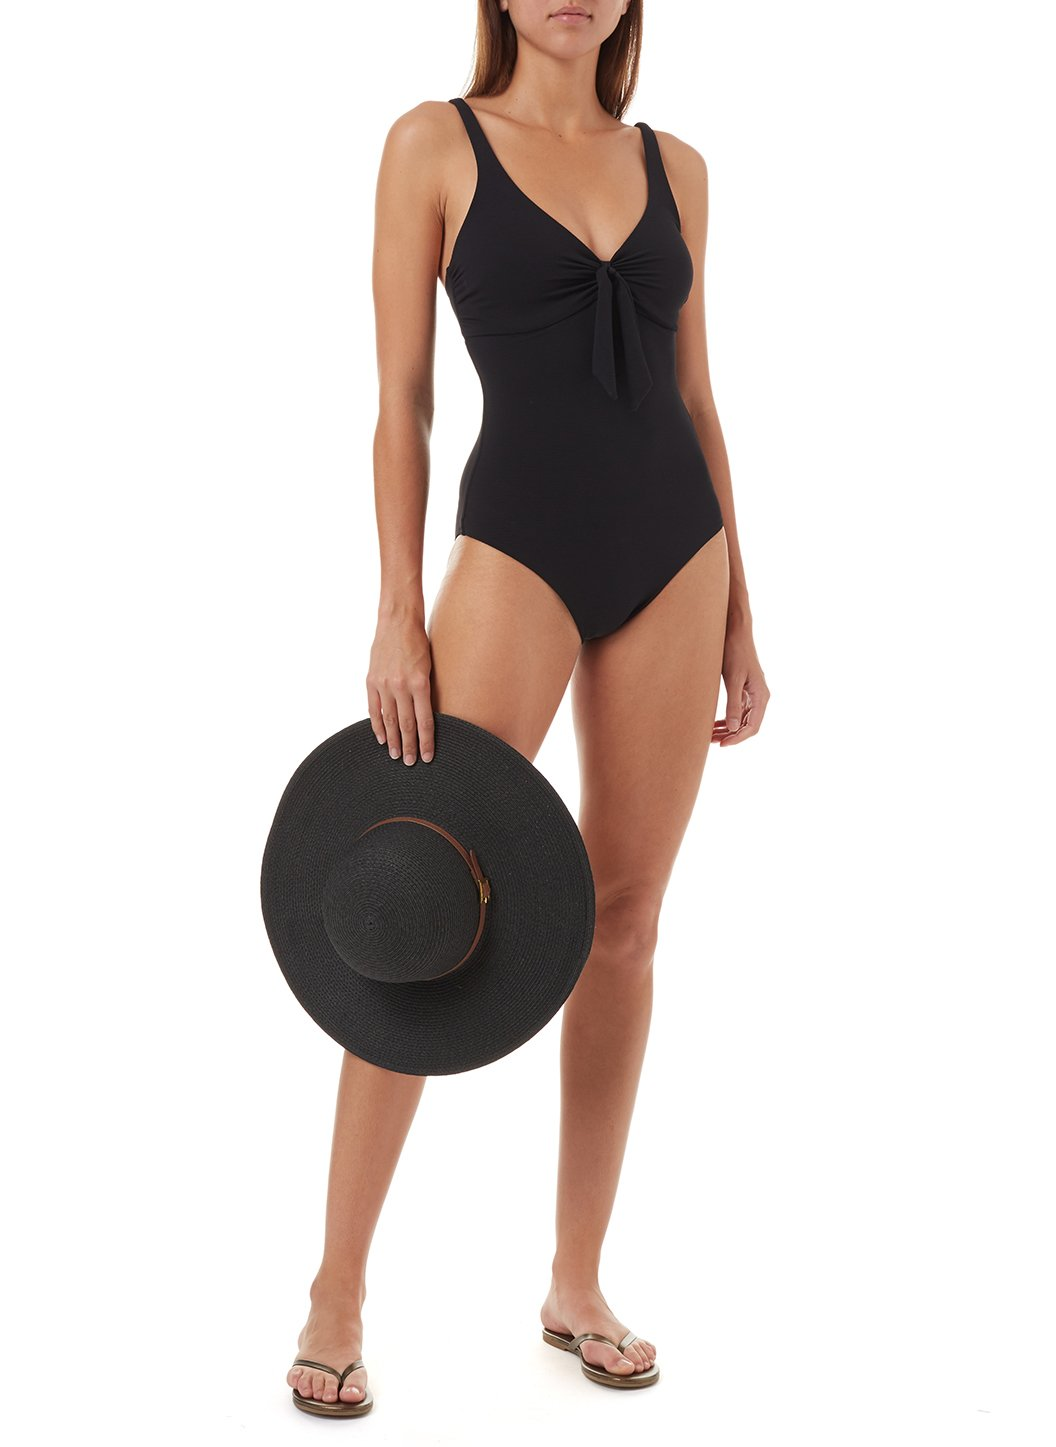 jemima wide brim beach hat black 2019 2